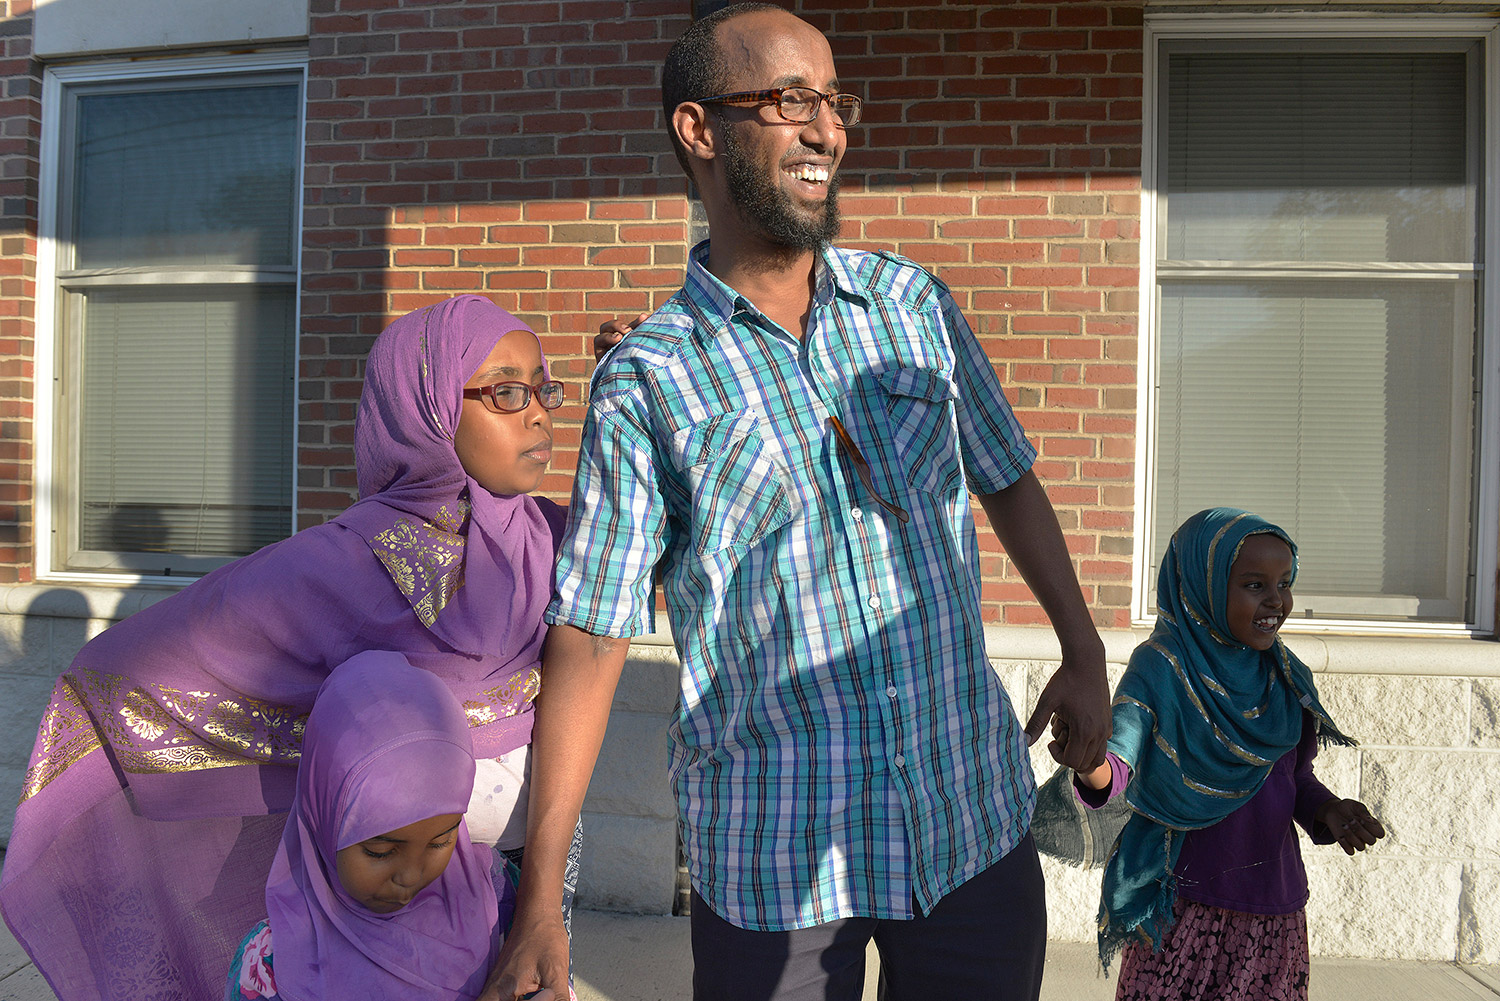 """Mahmoud Hassan, who is president of the Somali Community Center of Maine, said, """"We do feel responsibility to our community and the community at large. When we see a problem, we report it."""""""